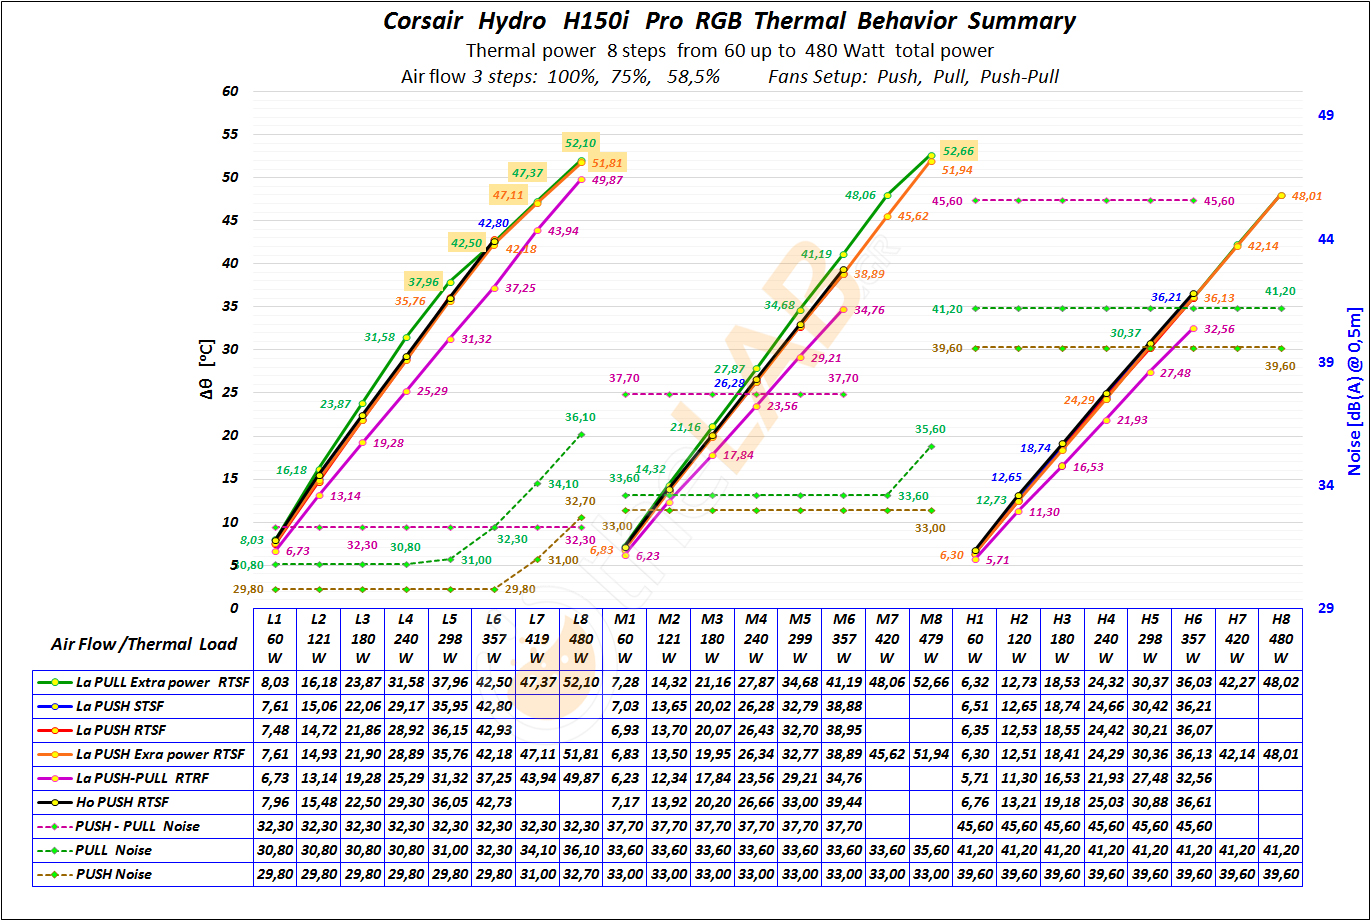 G-B2c_Corsair-H150i-Pro-RGB_Thermal-Behavior-Sumary-Extended-Graph_02exten.jpg